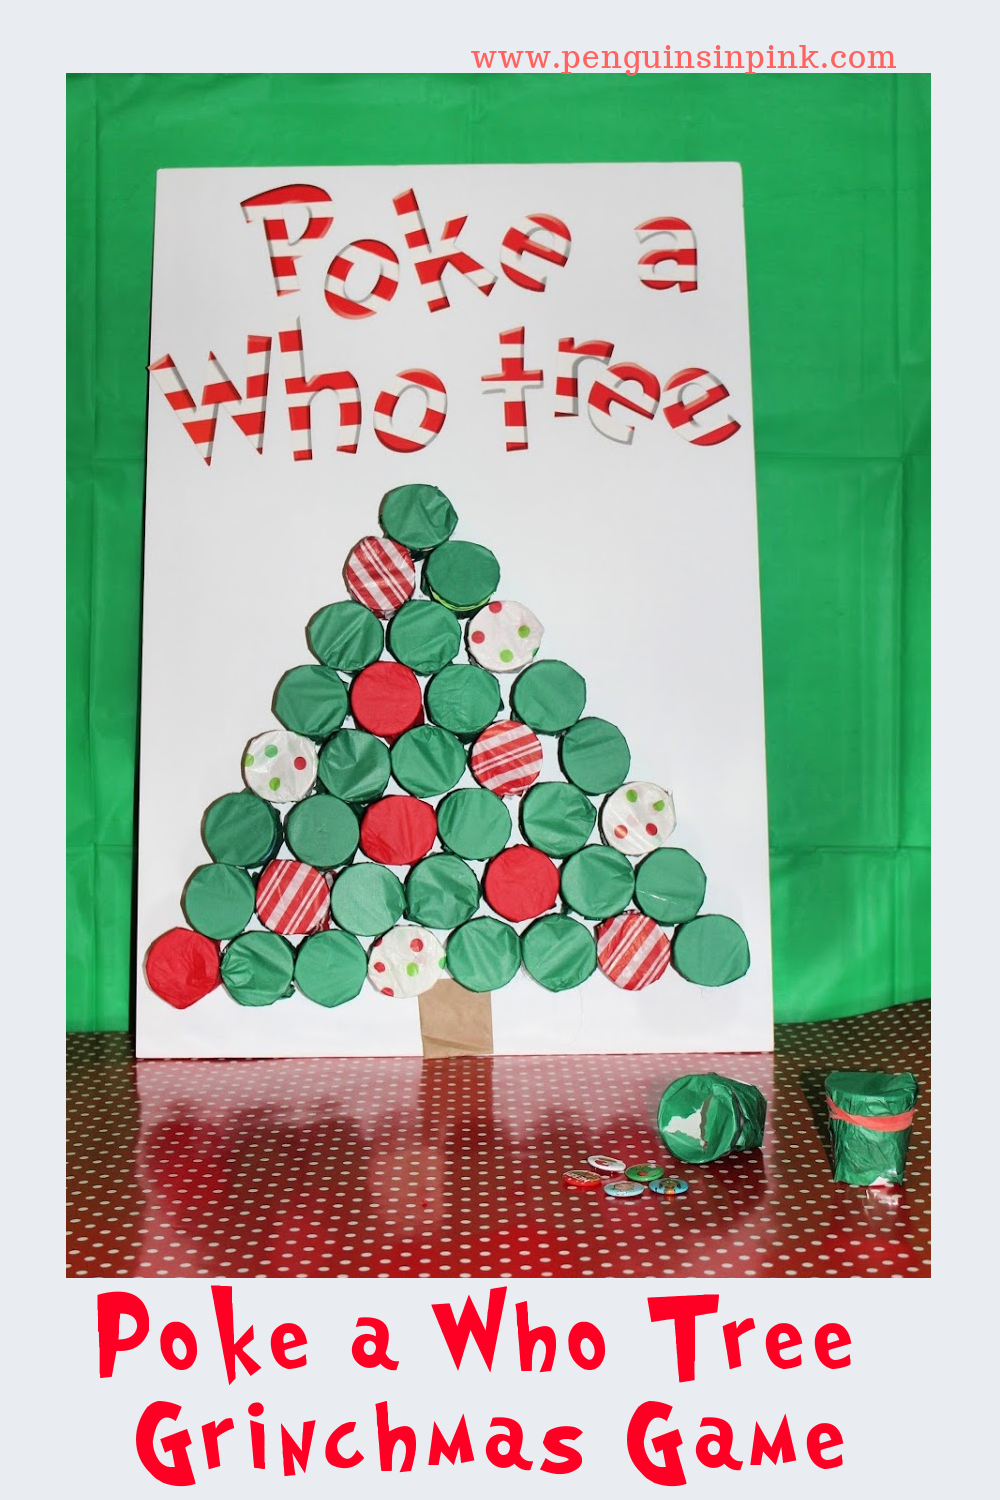 A perfect addition to any Grinchmas party, this Poke a Who Tree Grinchmas Game is super cute and easy to make. The tree is shaped out of paper cups covered with tissue paper. Inside each cup is a little Grinchmas themed trinket.